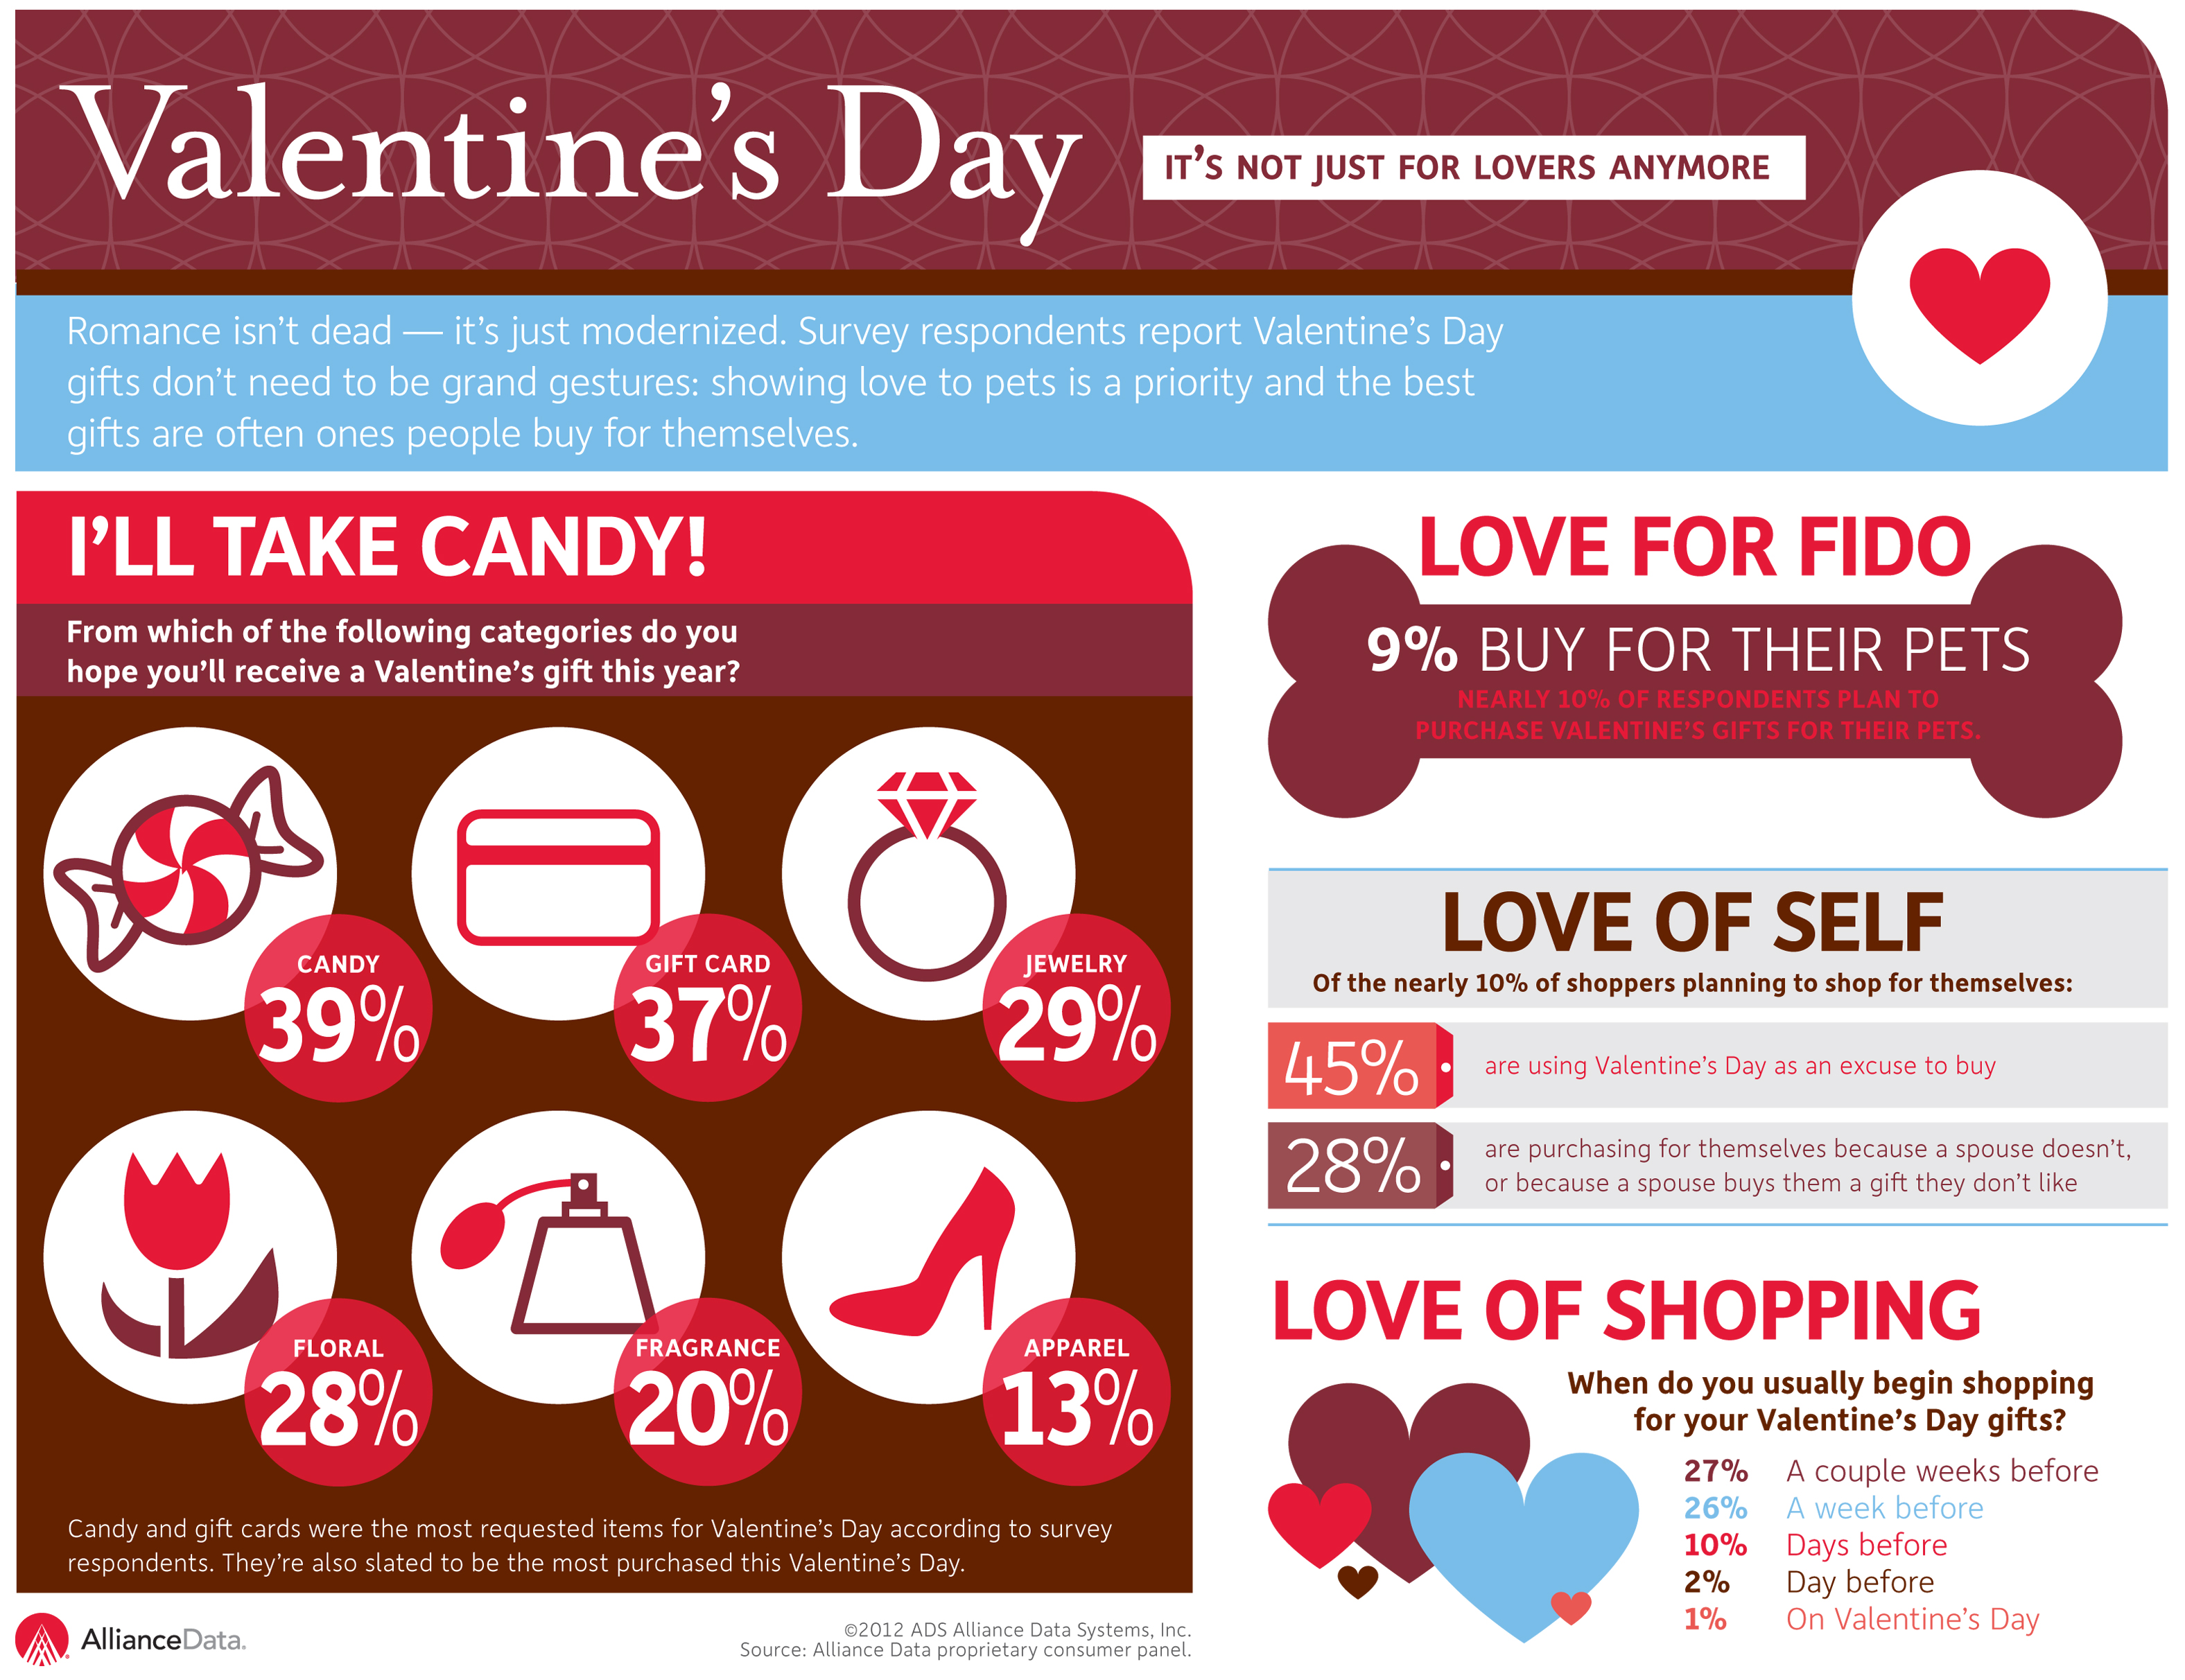 Thirty-nine percent of respondents have a sweet tooth, as candy was the most requested gift for Valentine's Day. Another nine percent plan to purchase a V-Day gift for their pets.